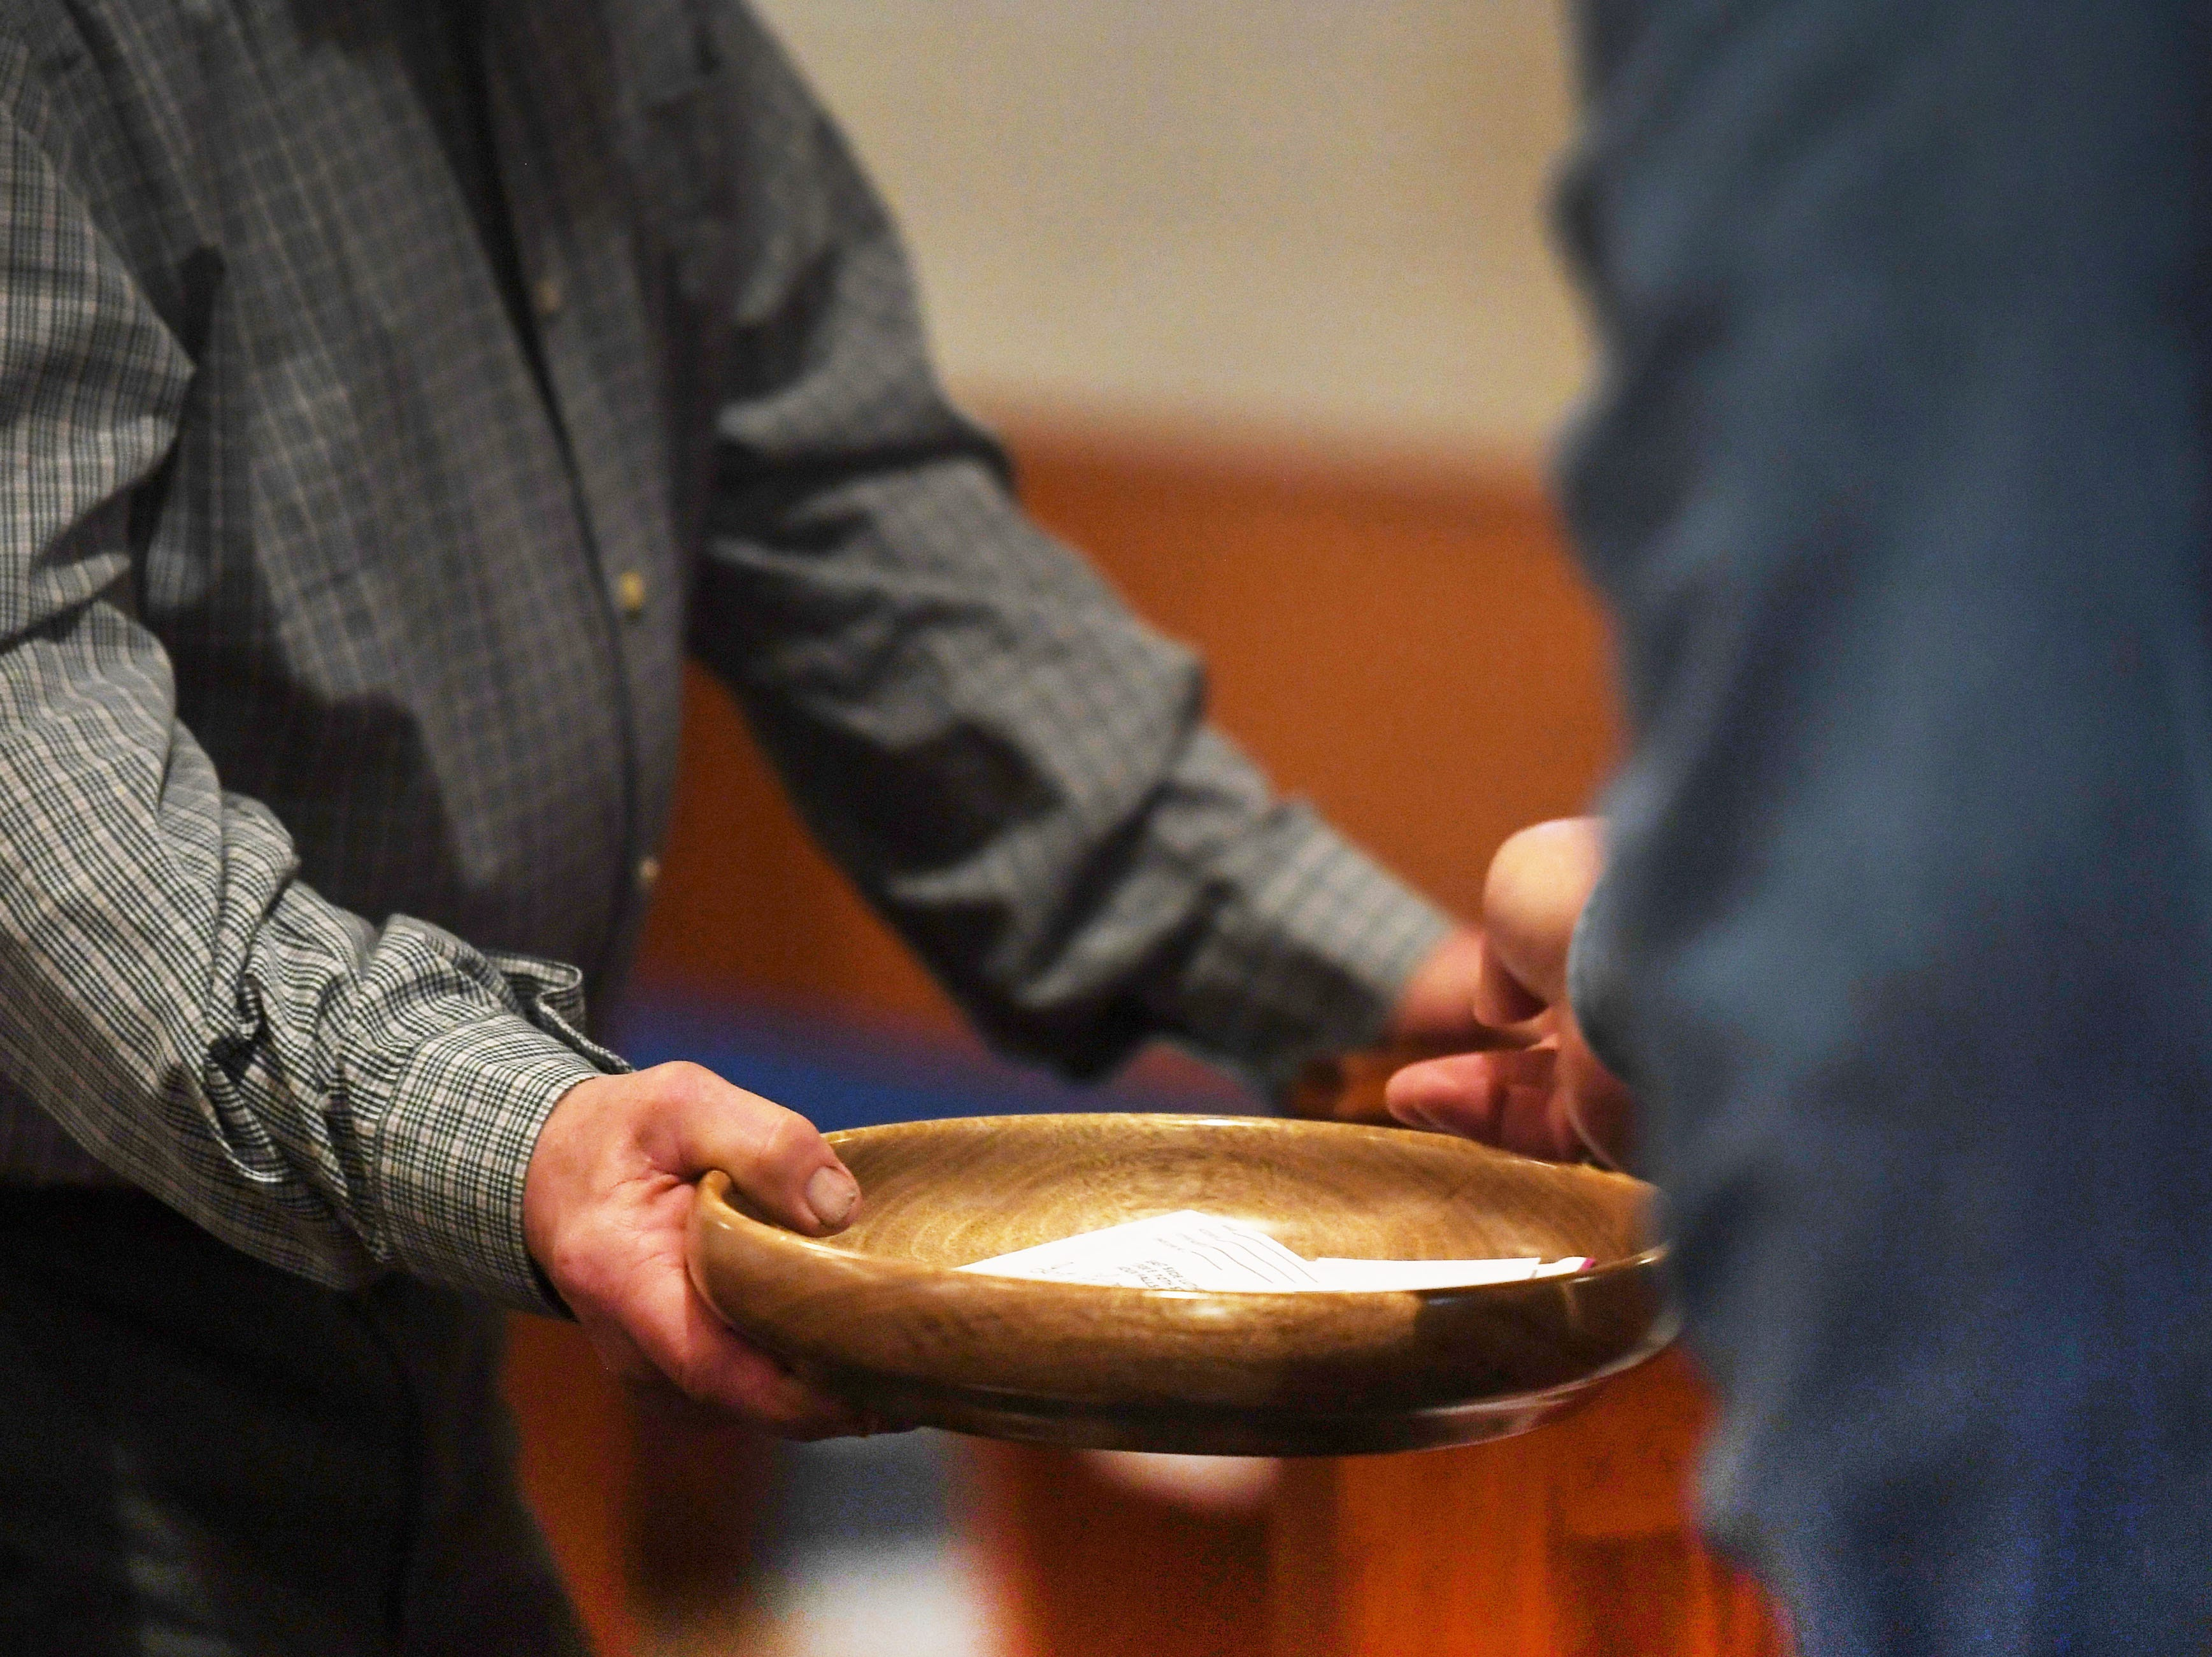 East Side Lutheran Church members give offerings during the noon service Wednesday, April 10, in Sioux Falls.